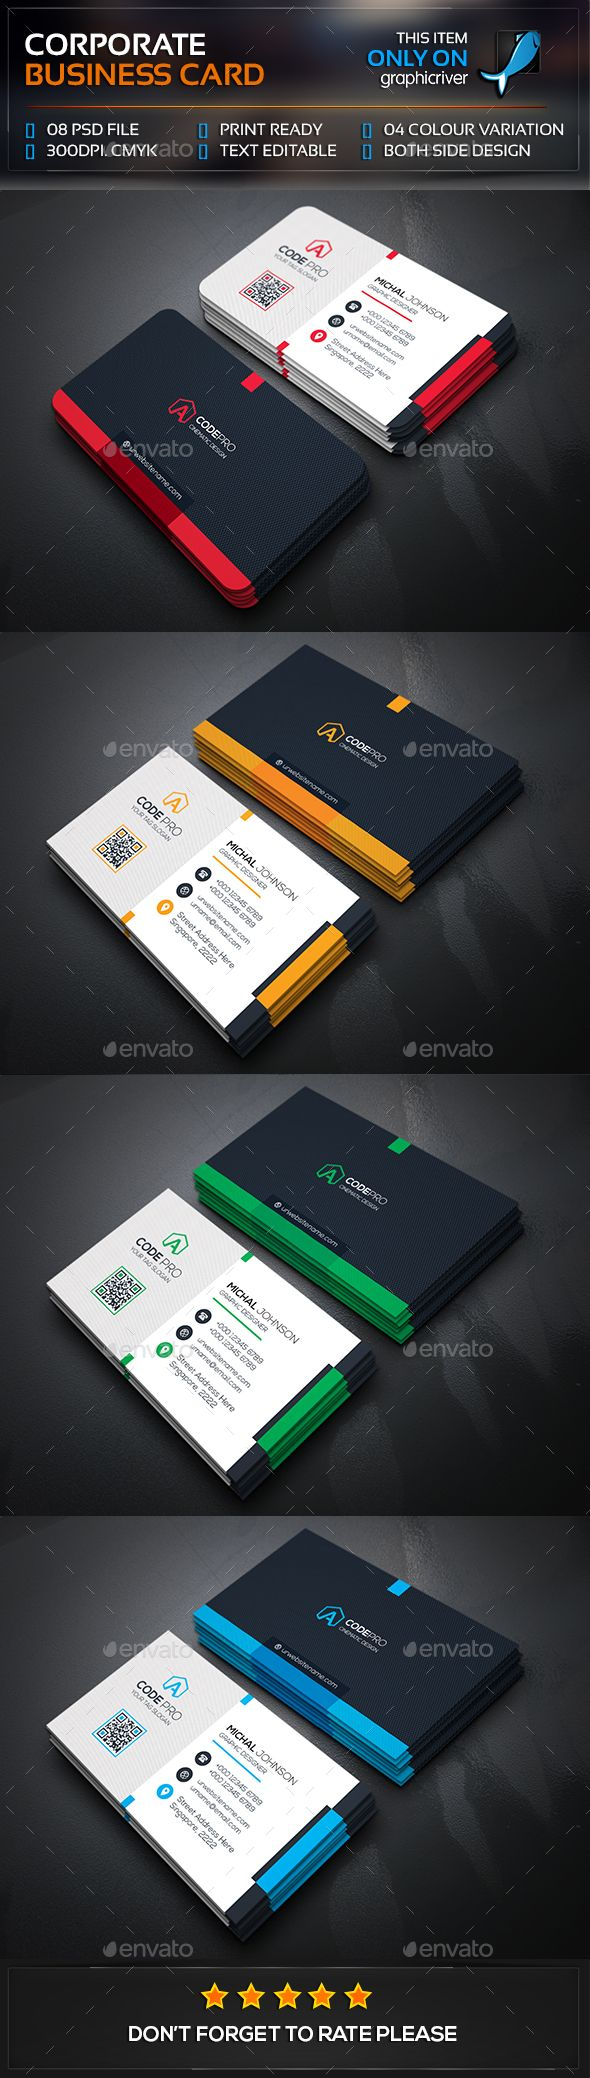 Mega corporate business card photoshop psd shot logo available mega corporate business card photoshop psd shot logo available here https reheart Image collections